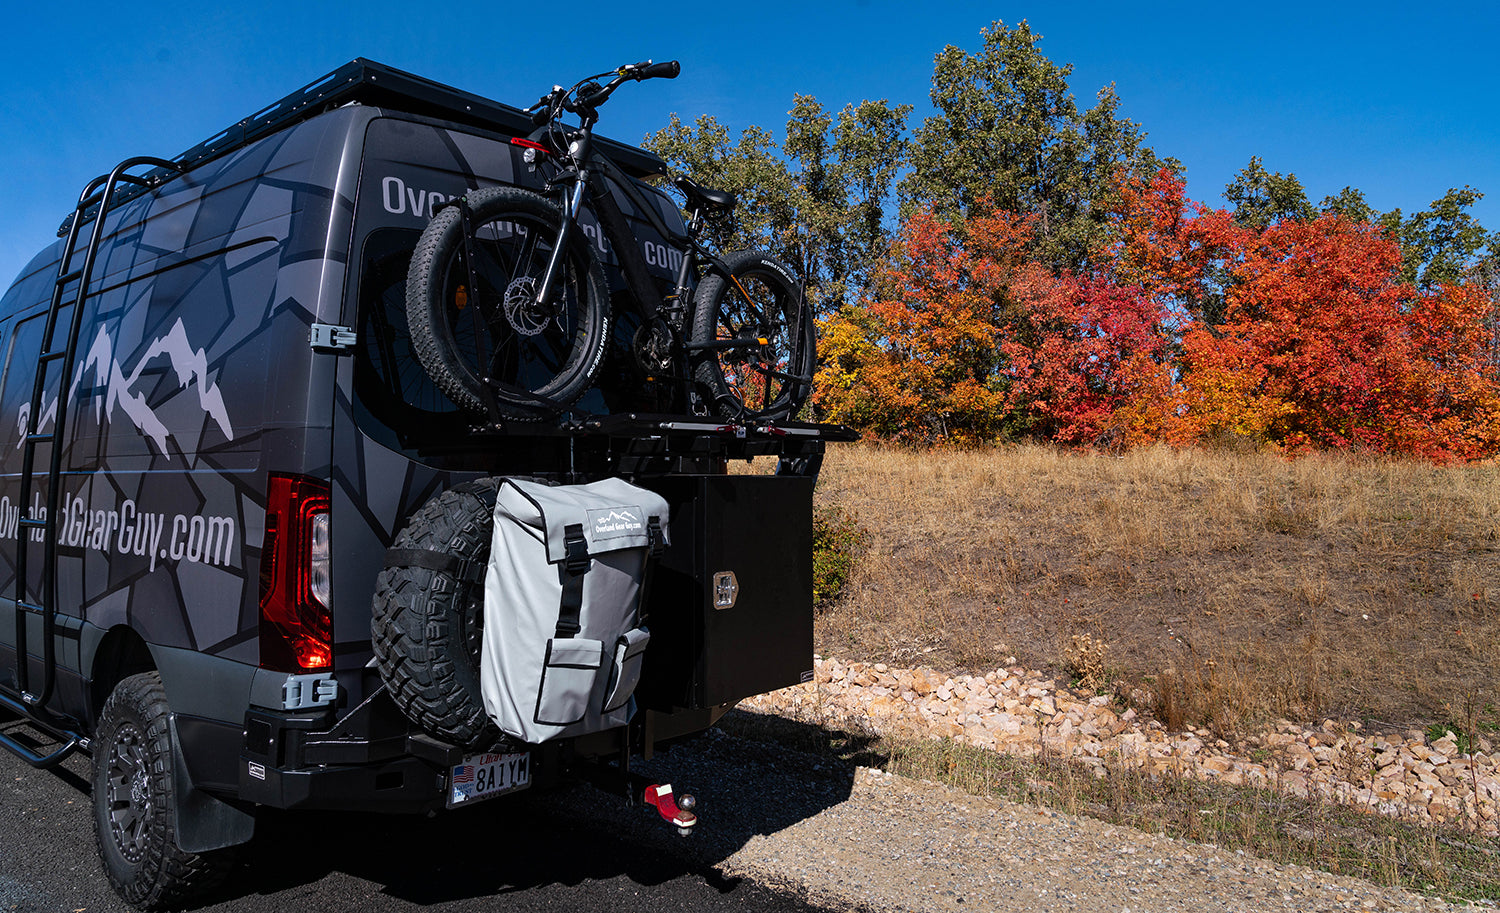 1up Bike Rack Overland Gear Guy Van 2019 Sprinter 4x4